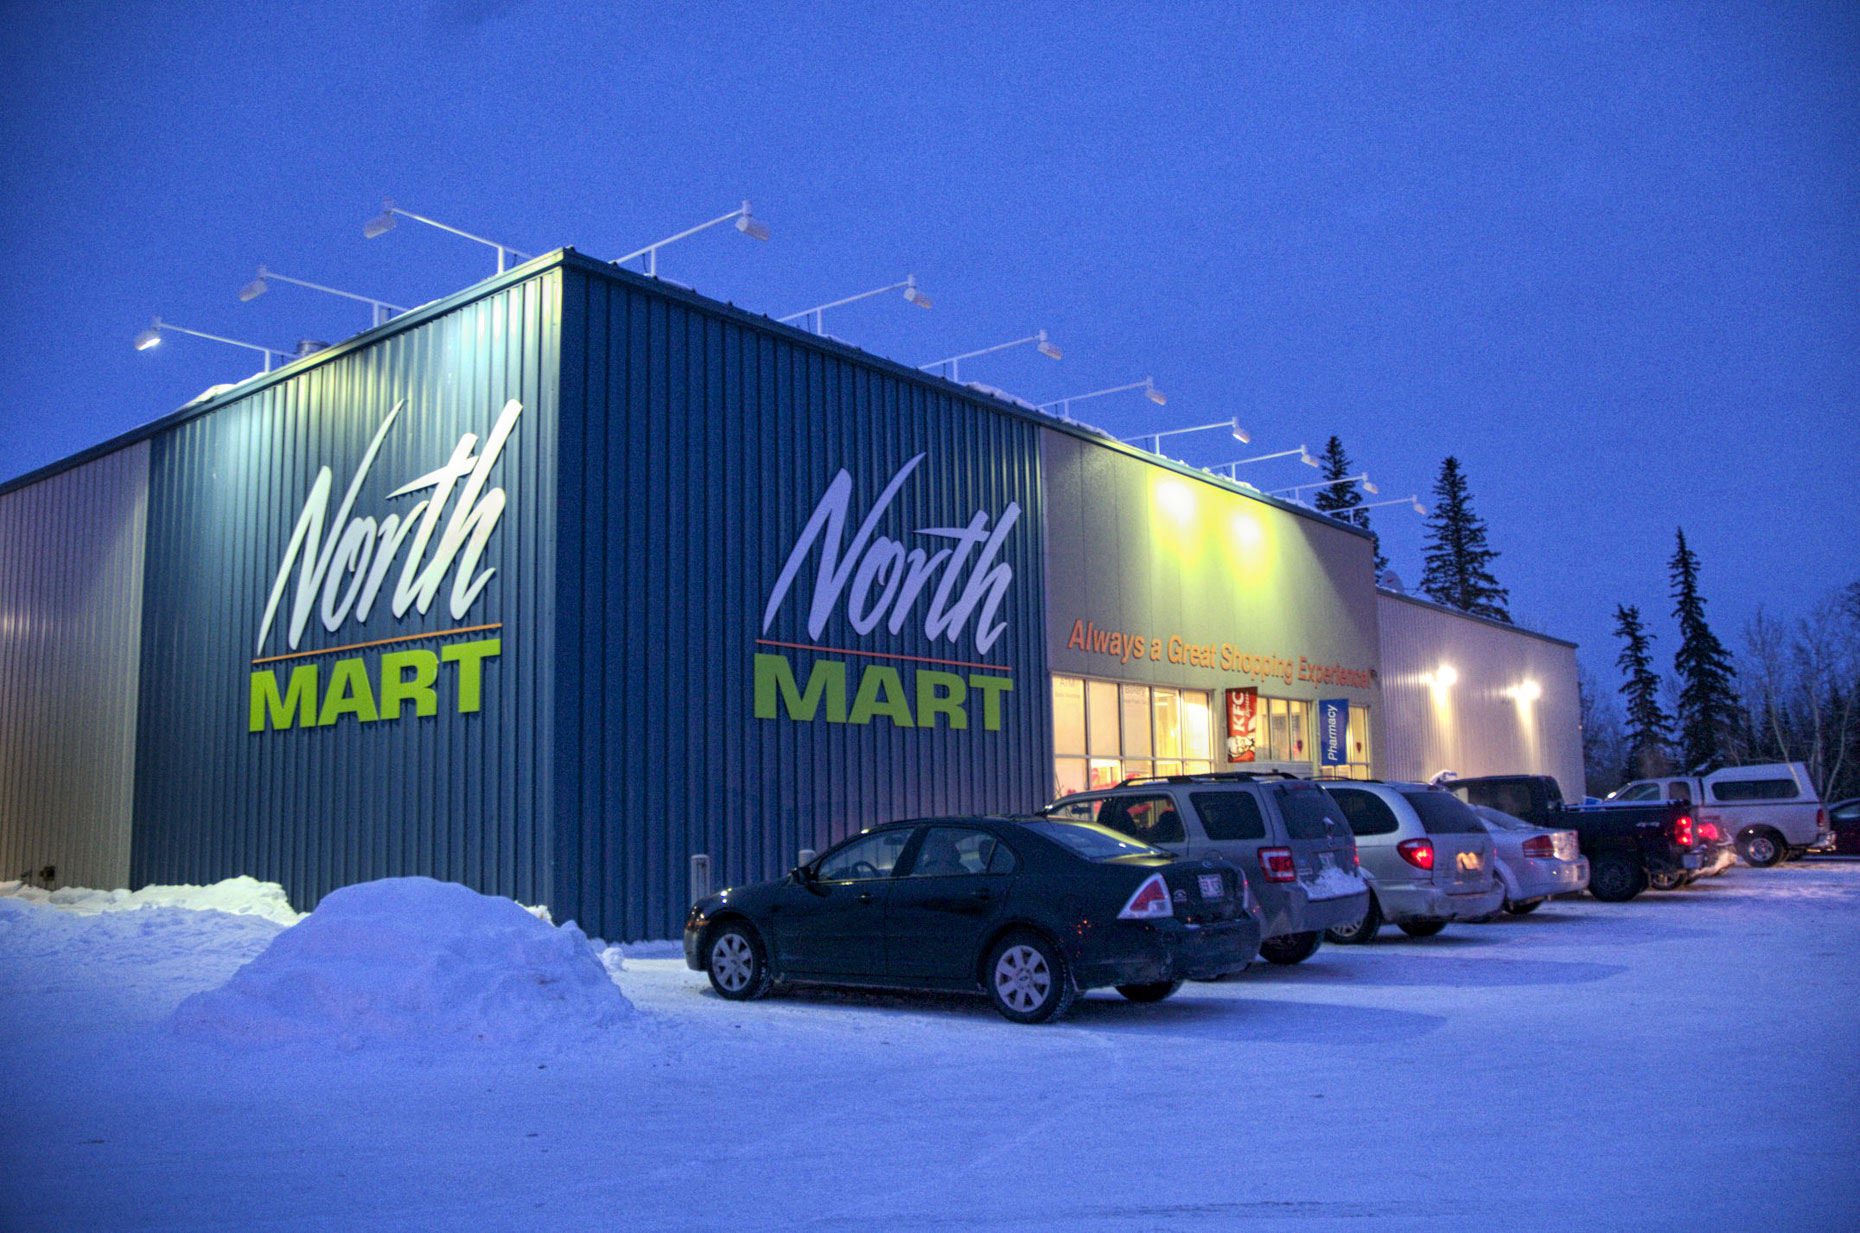 The North Mart